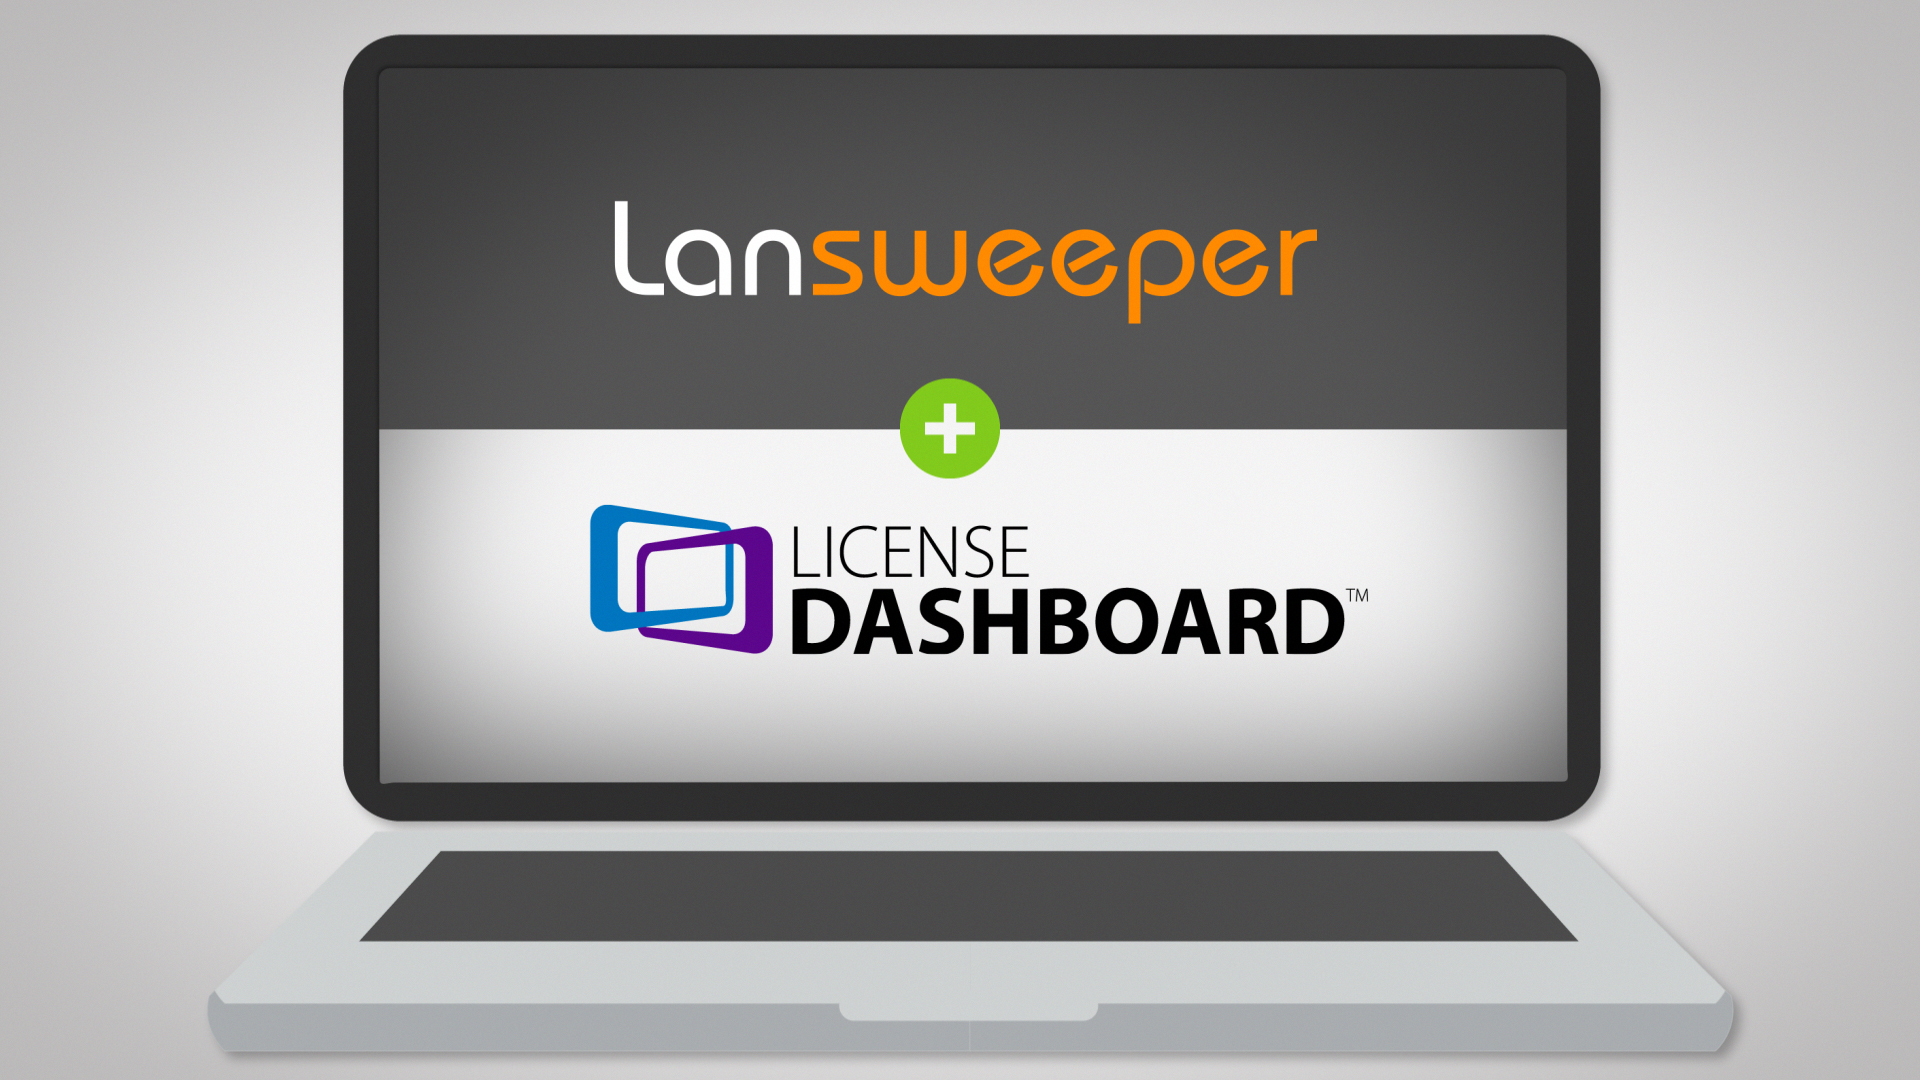 License Dashboard Lansweeper